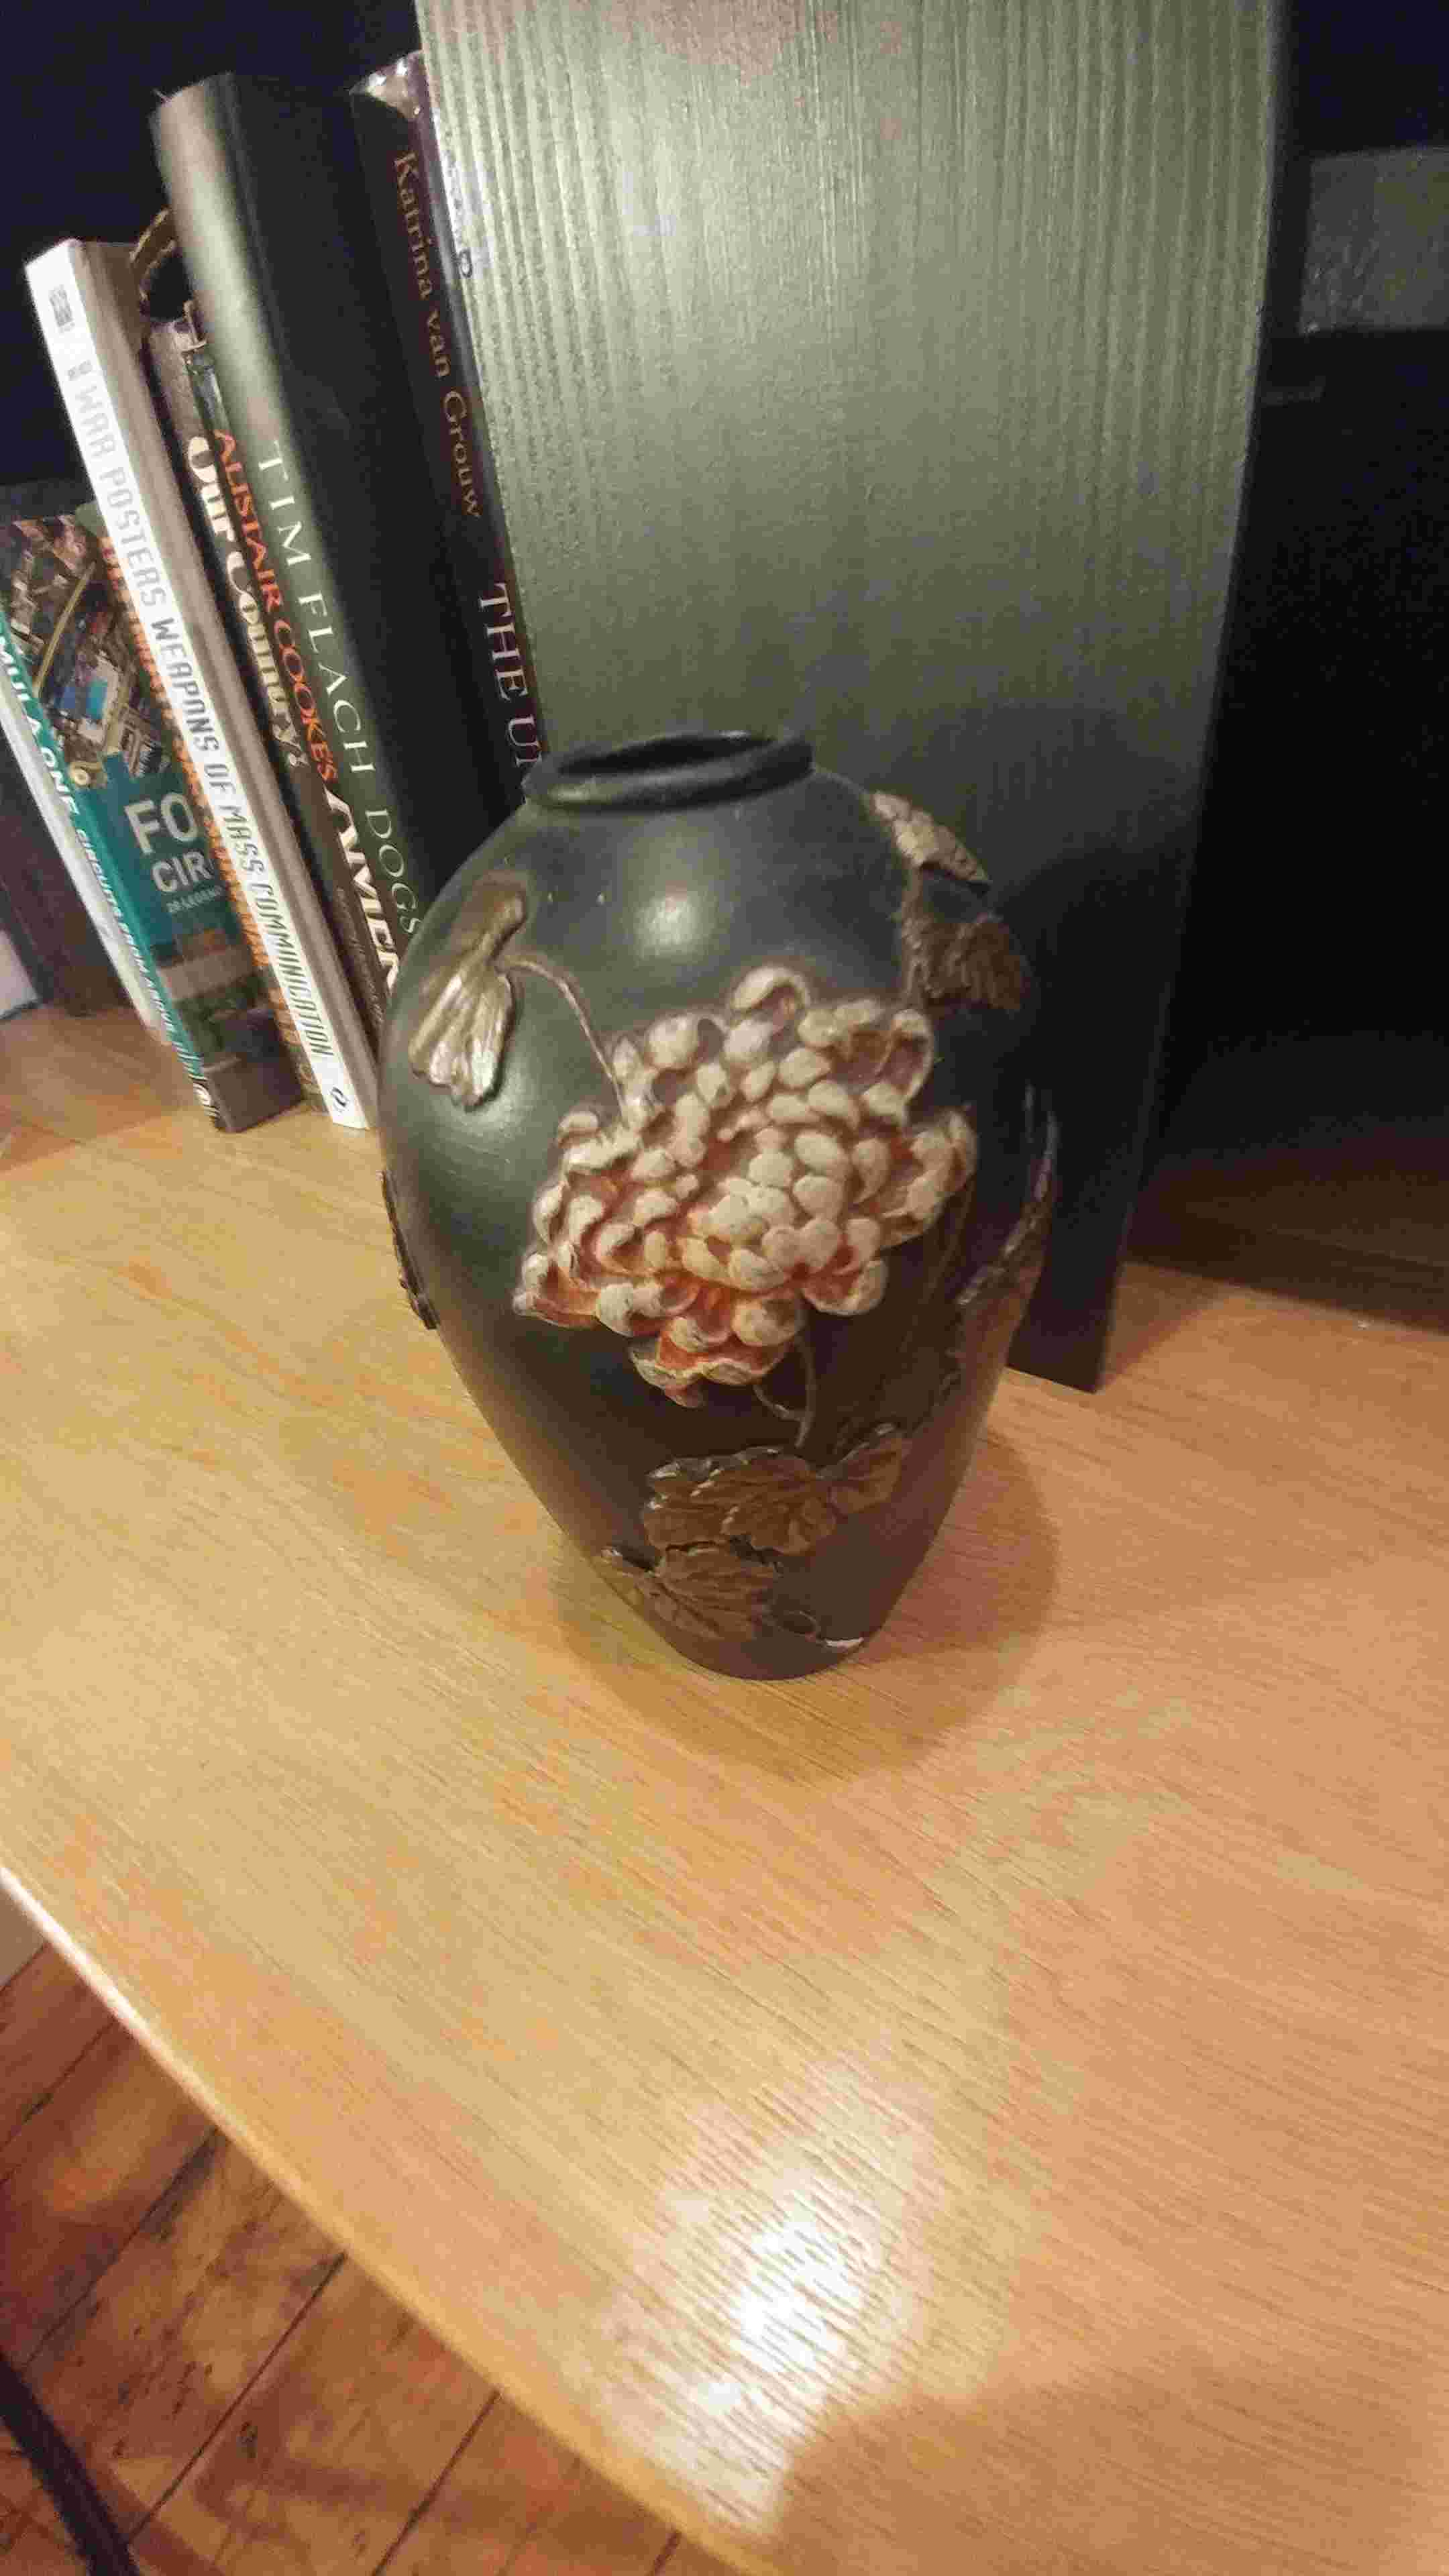 Any ideas who this vase is made by? 20180310